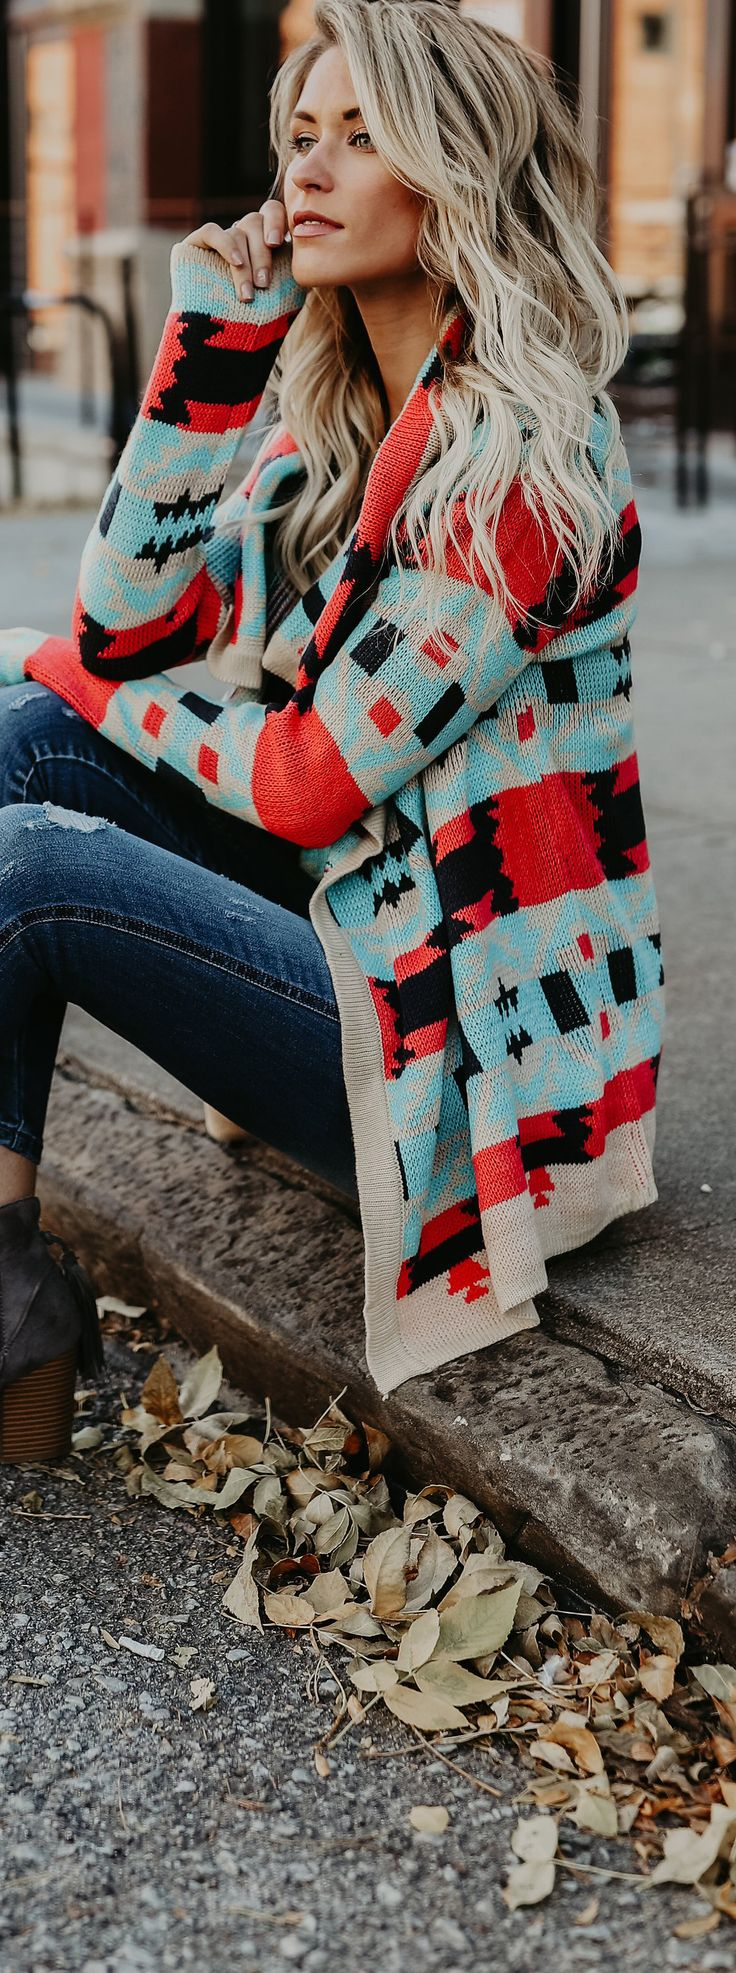 Fall Fashion 2017 with Bohemian flare! Love this colorful cardigan | Boho fashion outfits | Bohemian inspired clothes